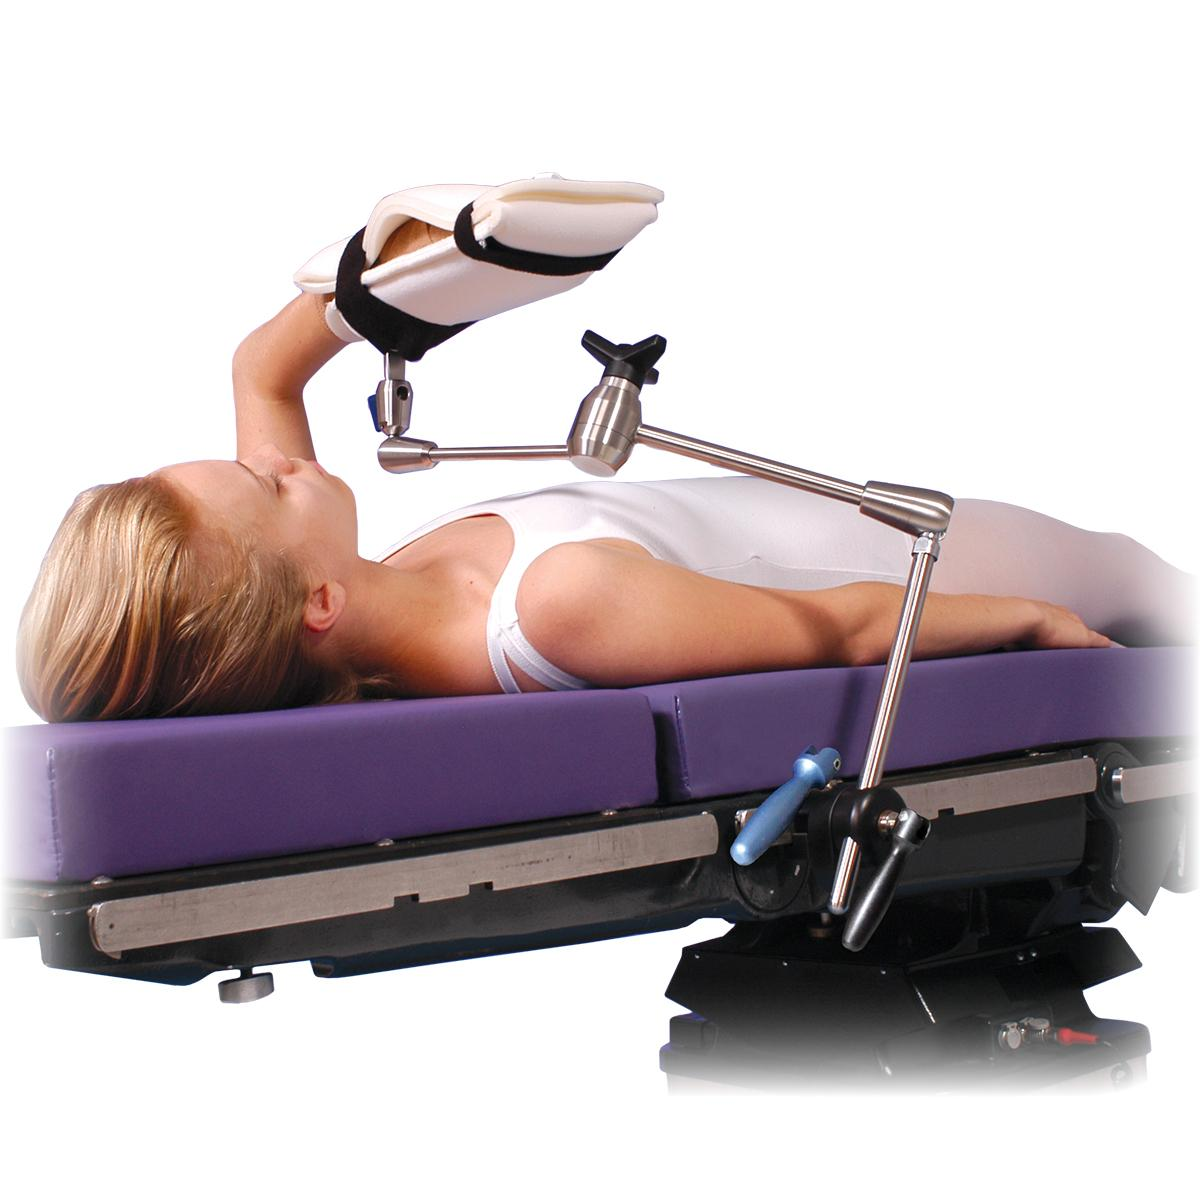 Allen® Arm Positioner, patient in supine position (back)